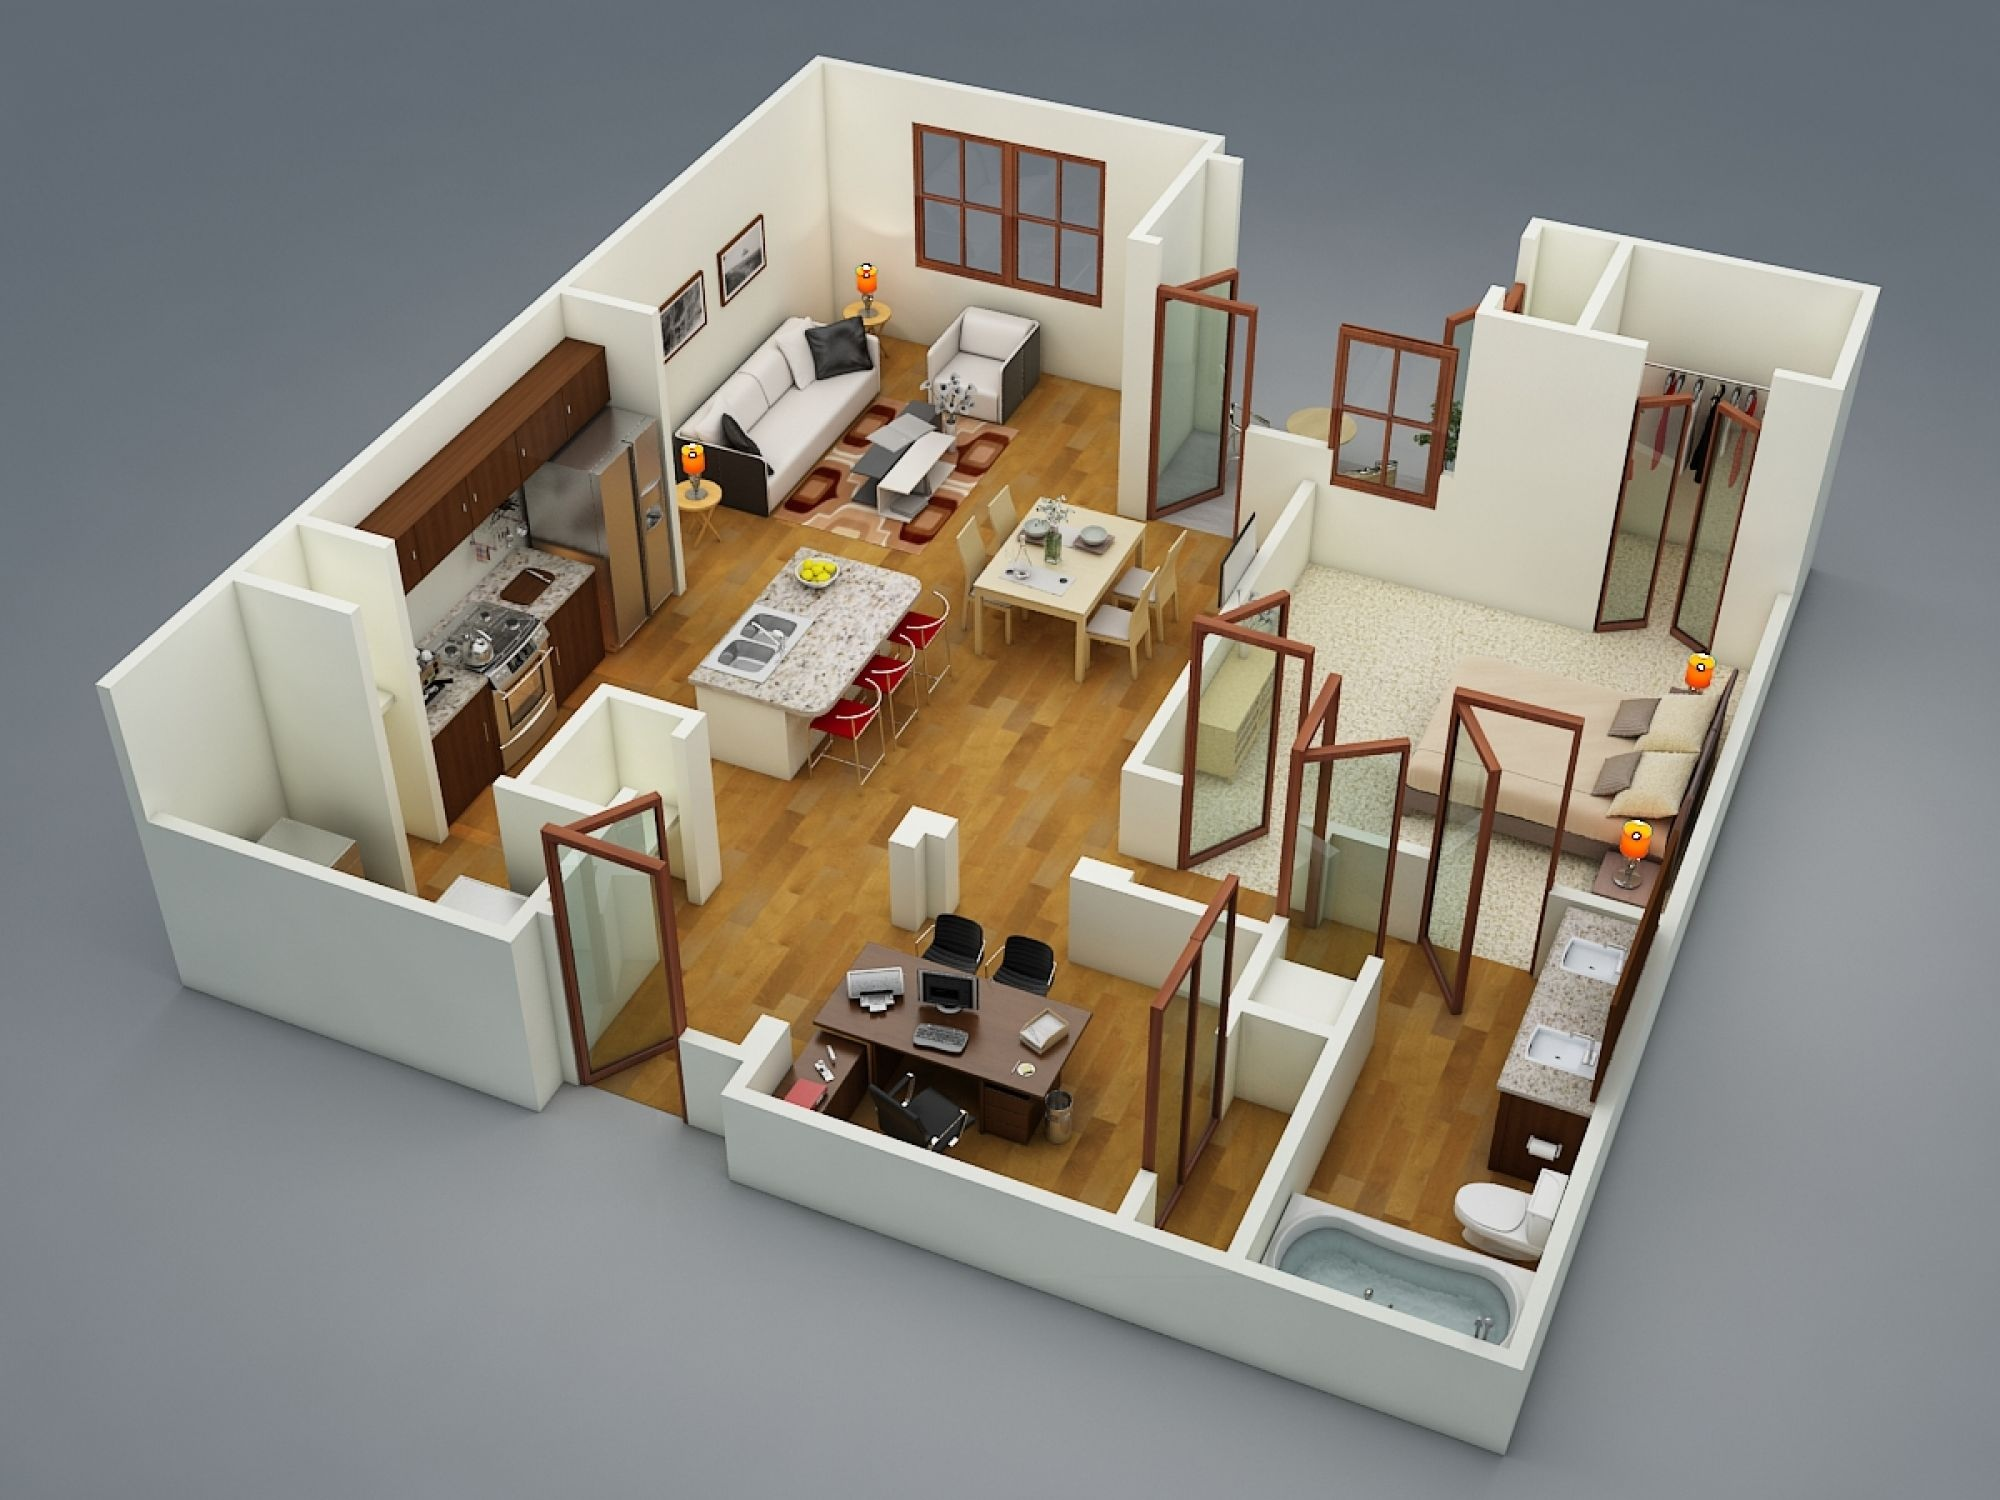 1 bedroom apartment house plans for 4 apartment building plans